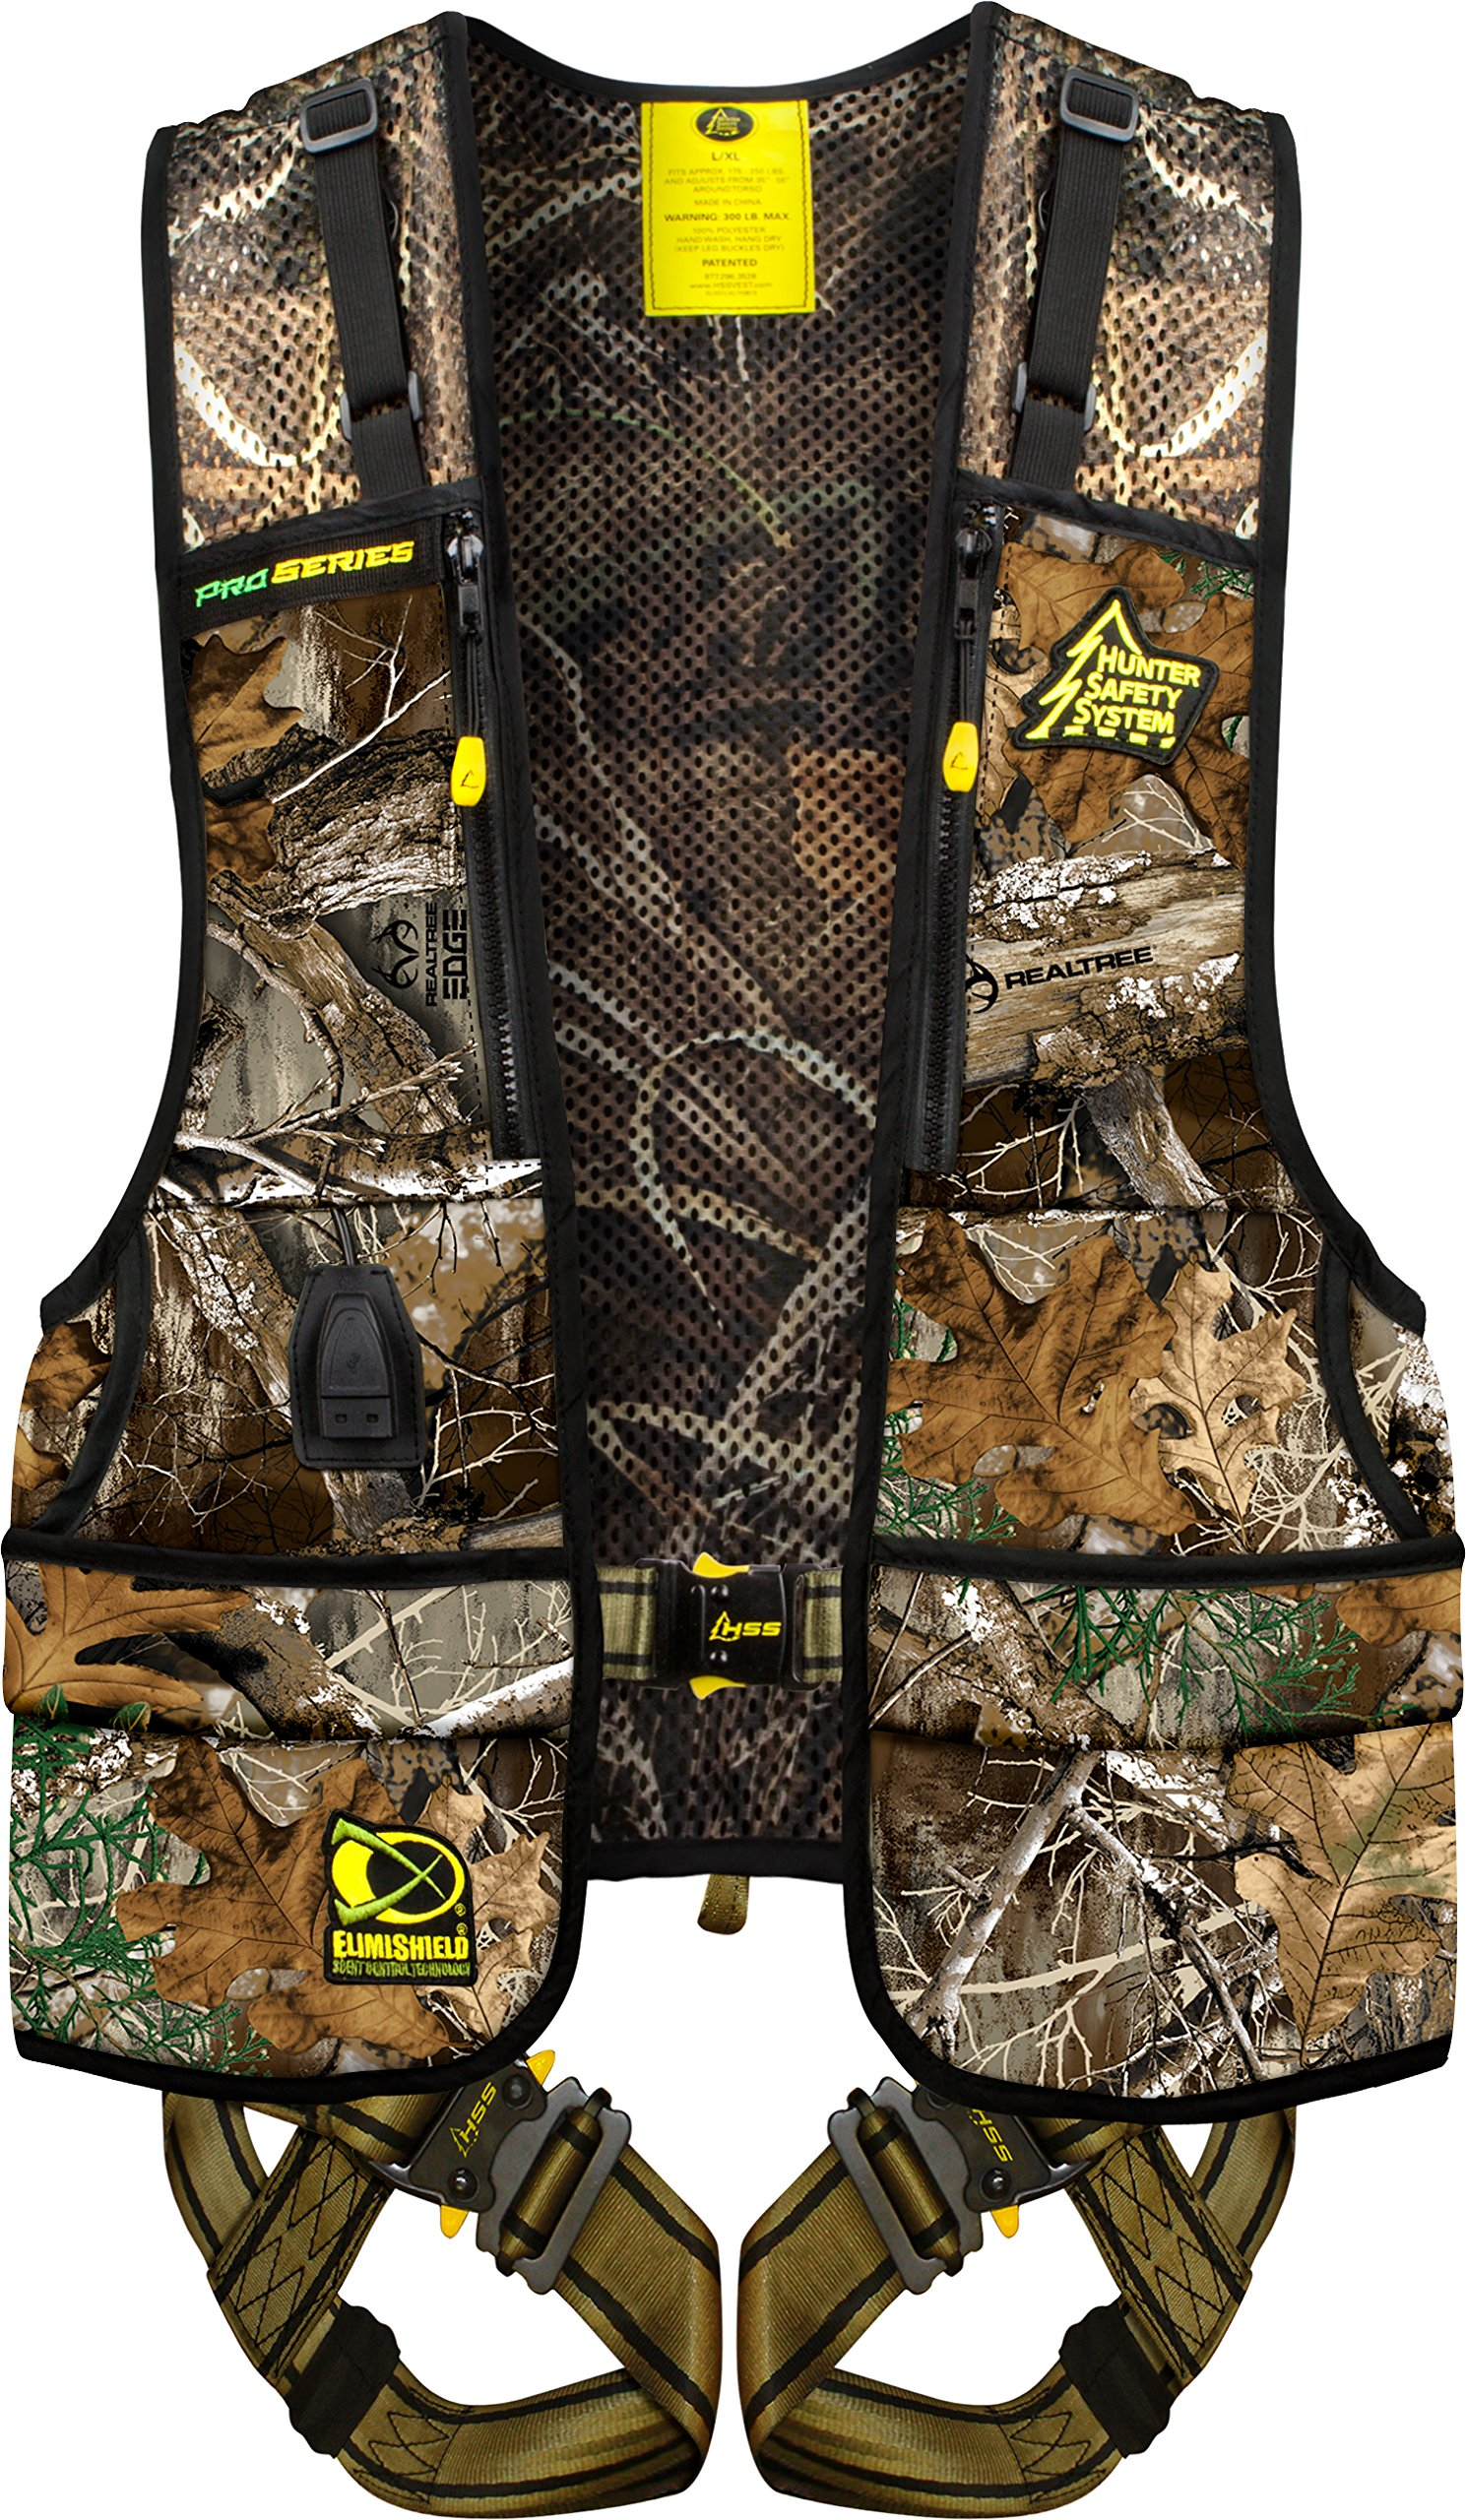 Hunter Safety System Pro-Series Harness with Elimishield Scent Control Technology, Large/X-Large by Hunter Safety System